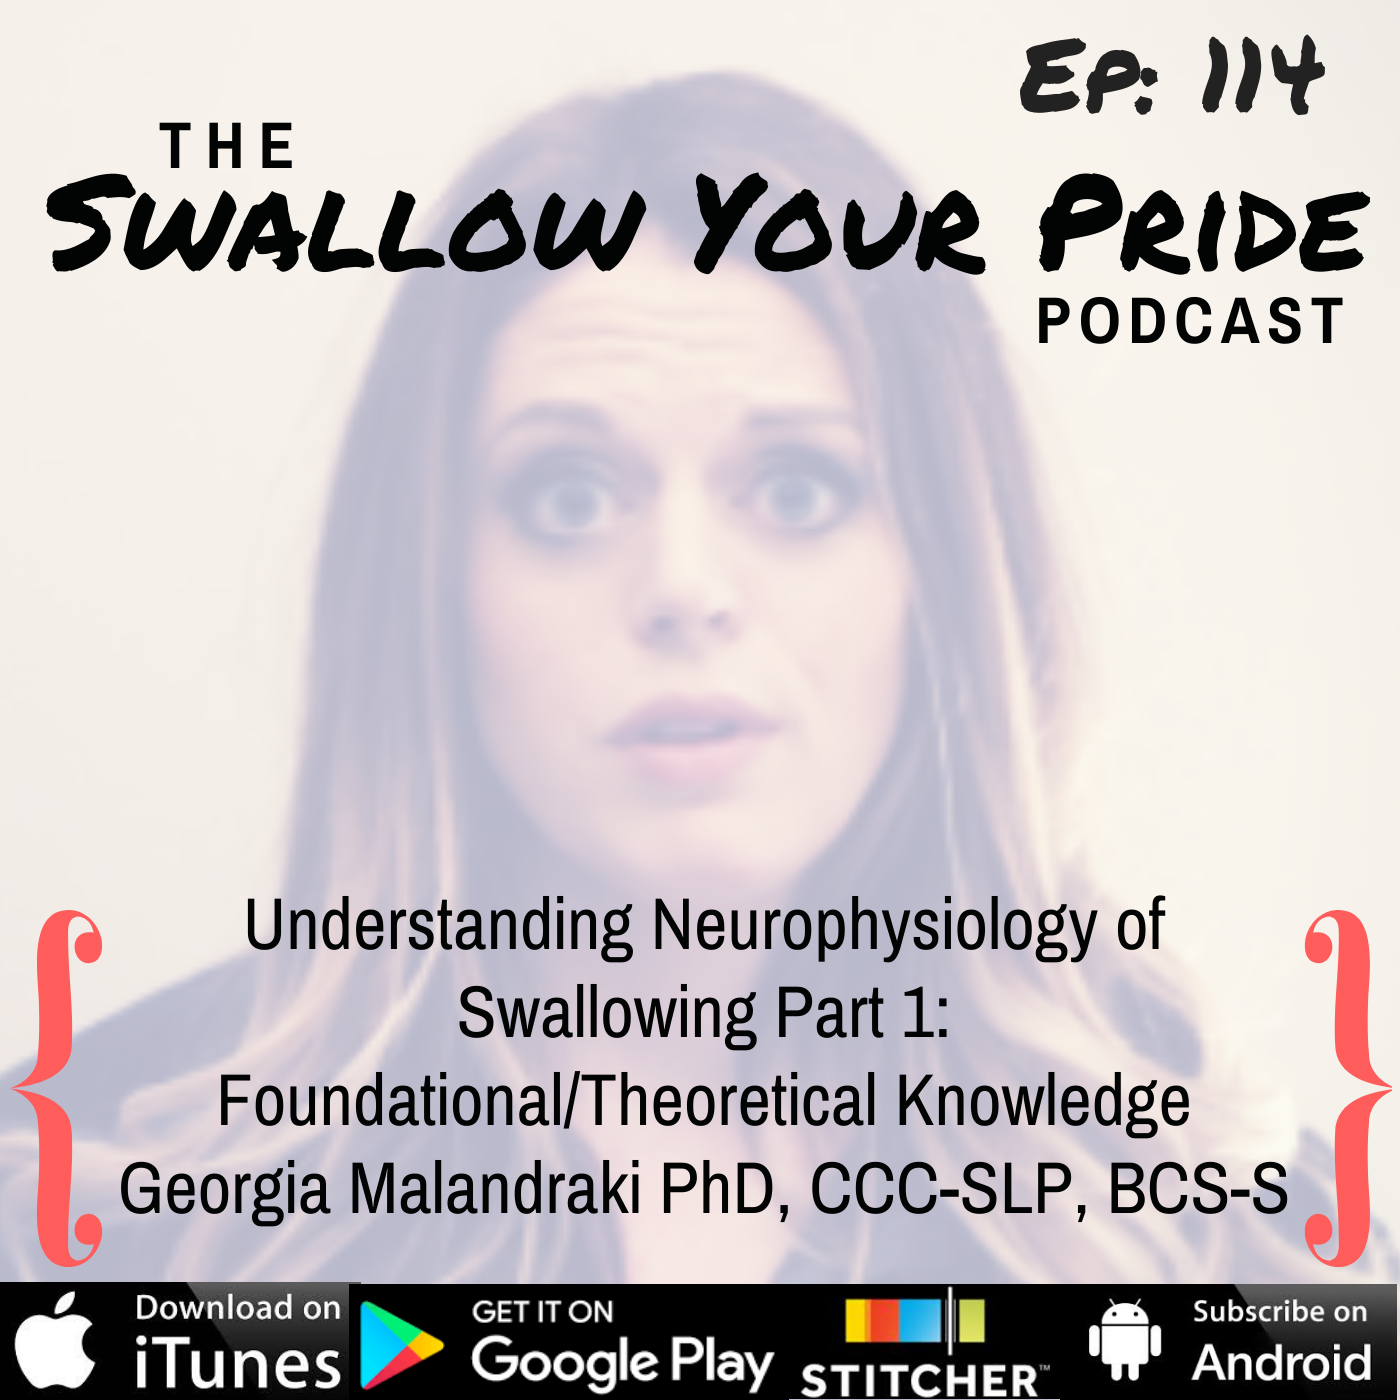 114 – Georgia Malandraki PhD, CCC-SLP, BCS-S – Understanding Neurophysiology of Swallowing Part 1: Foundational/Theoretical Knowledge